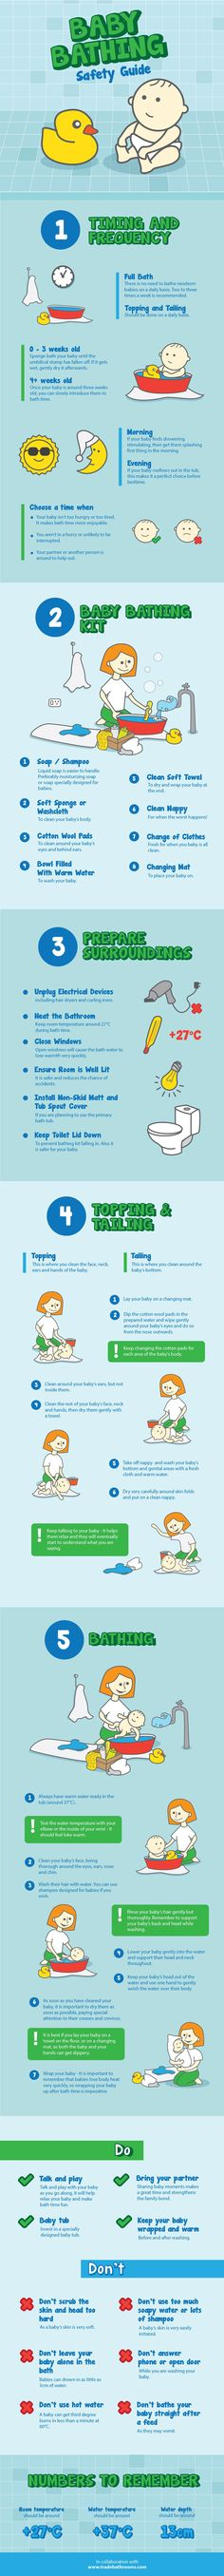 Infographic: Baby Bathing Safety Guide